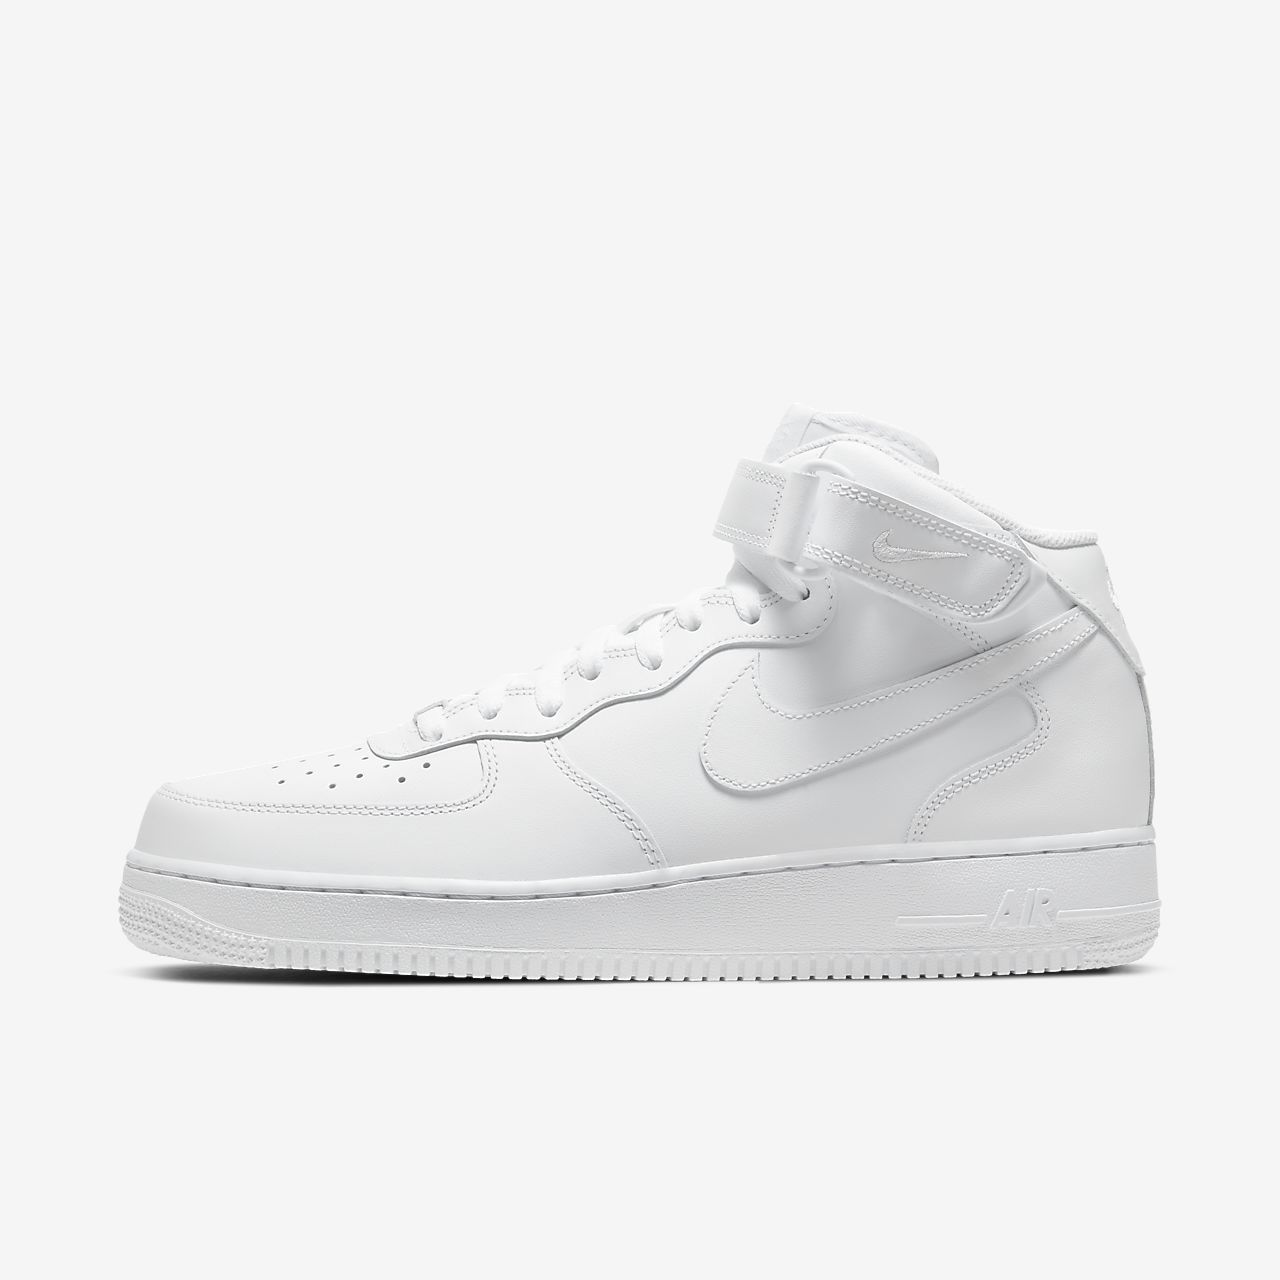 nike men's air force 1 mid '07 nz